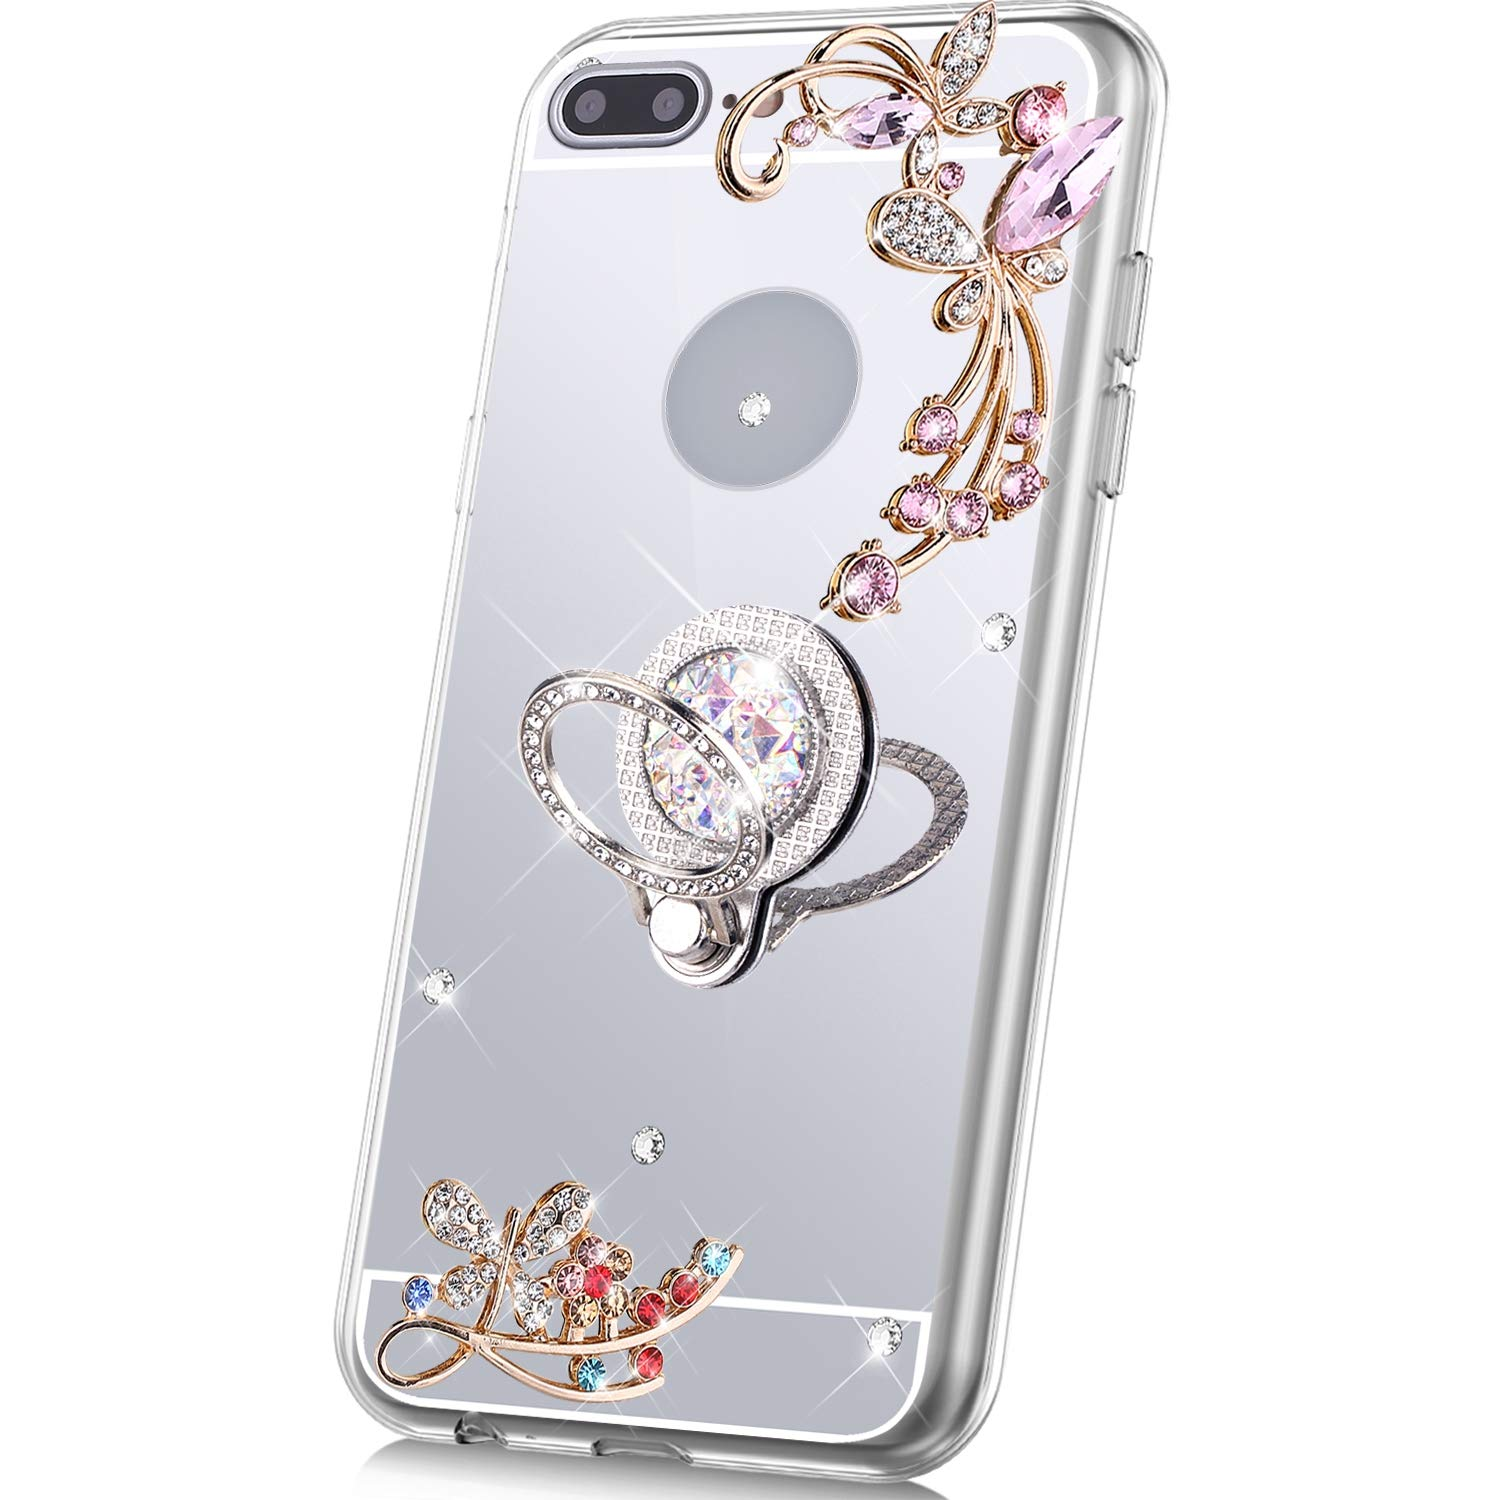 PHEZEN Case for iPhone 7 Plus/8 Plus Mirror Case,Bling Glitter Flowers Sparkle Rhinestone Mirror Back TPU Silicone Case Cover with Ring Kickstand Diamond Crystal Case for iPhone 7 Plus/8 Plus,Silver by PHEZEN